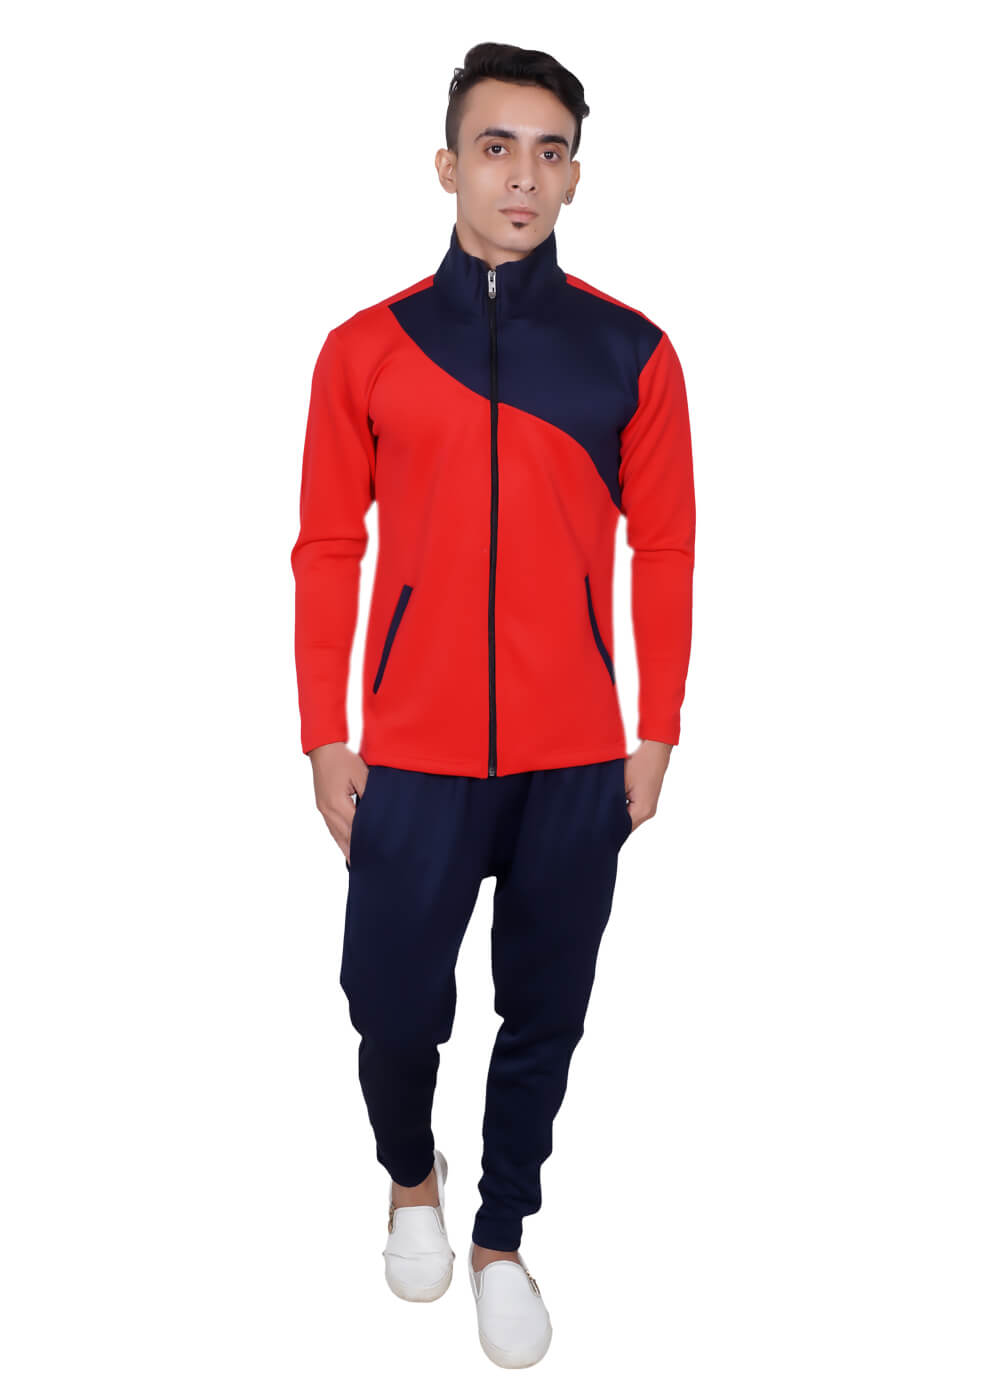 Cheap Tracksuits Manufacturers in Patna